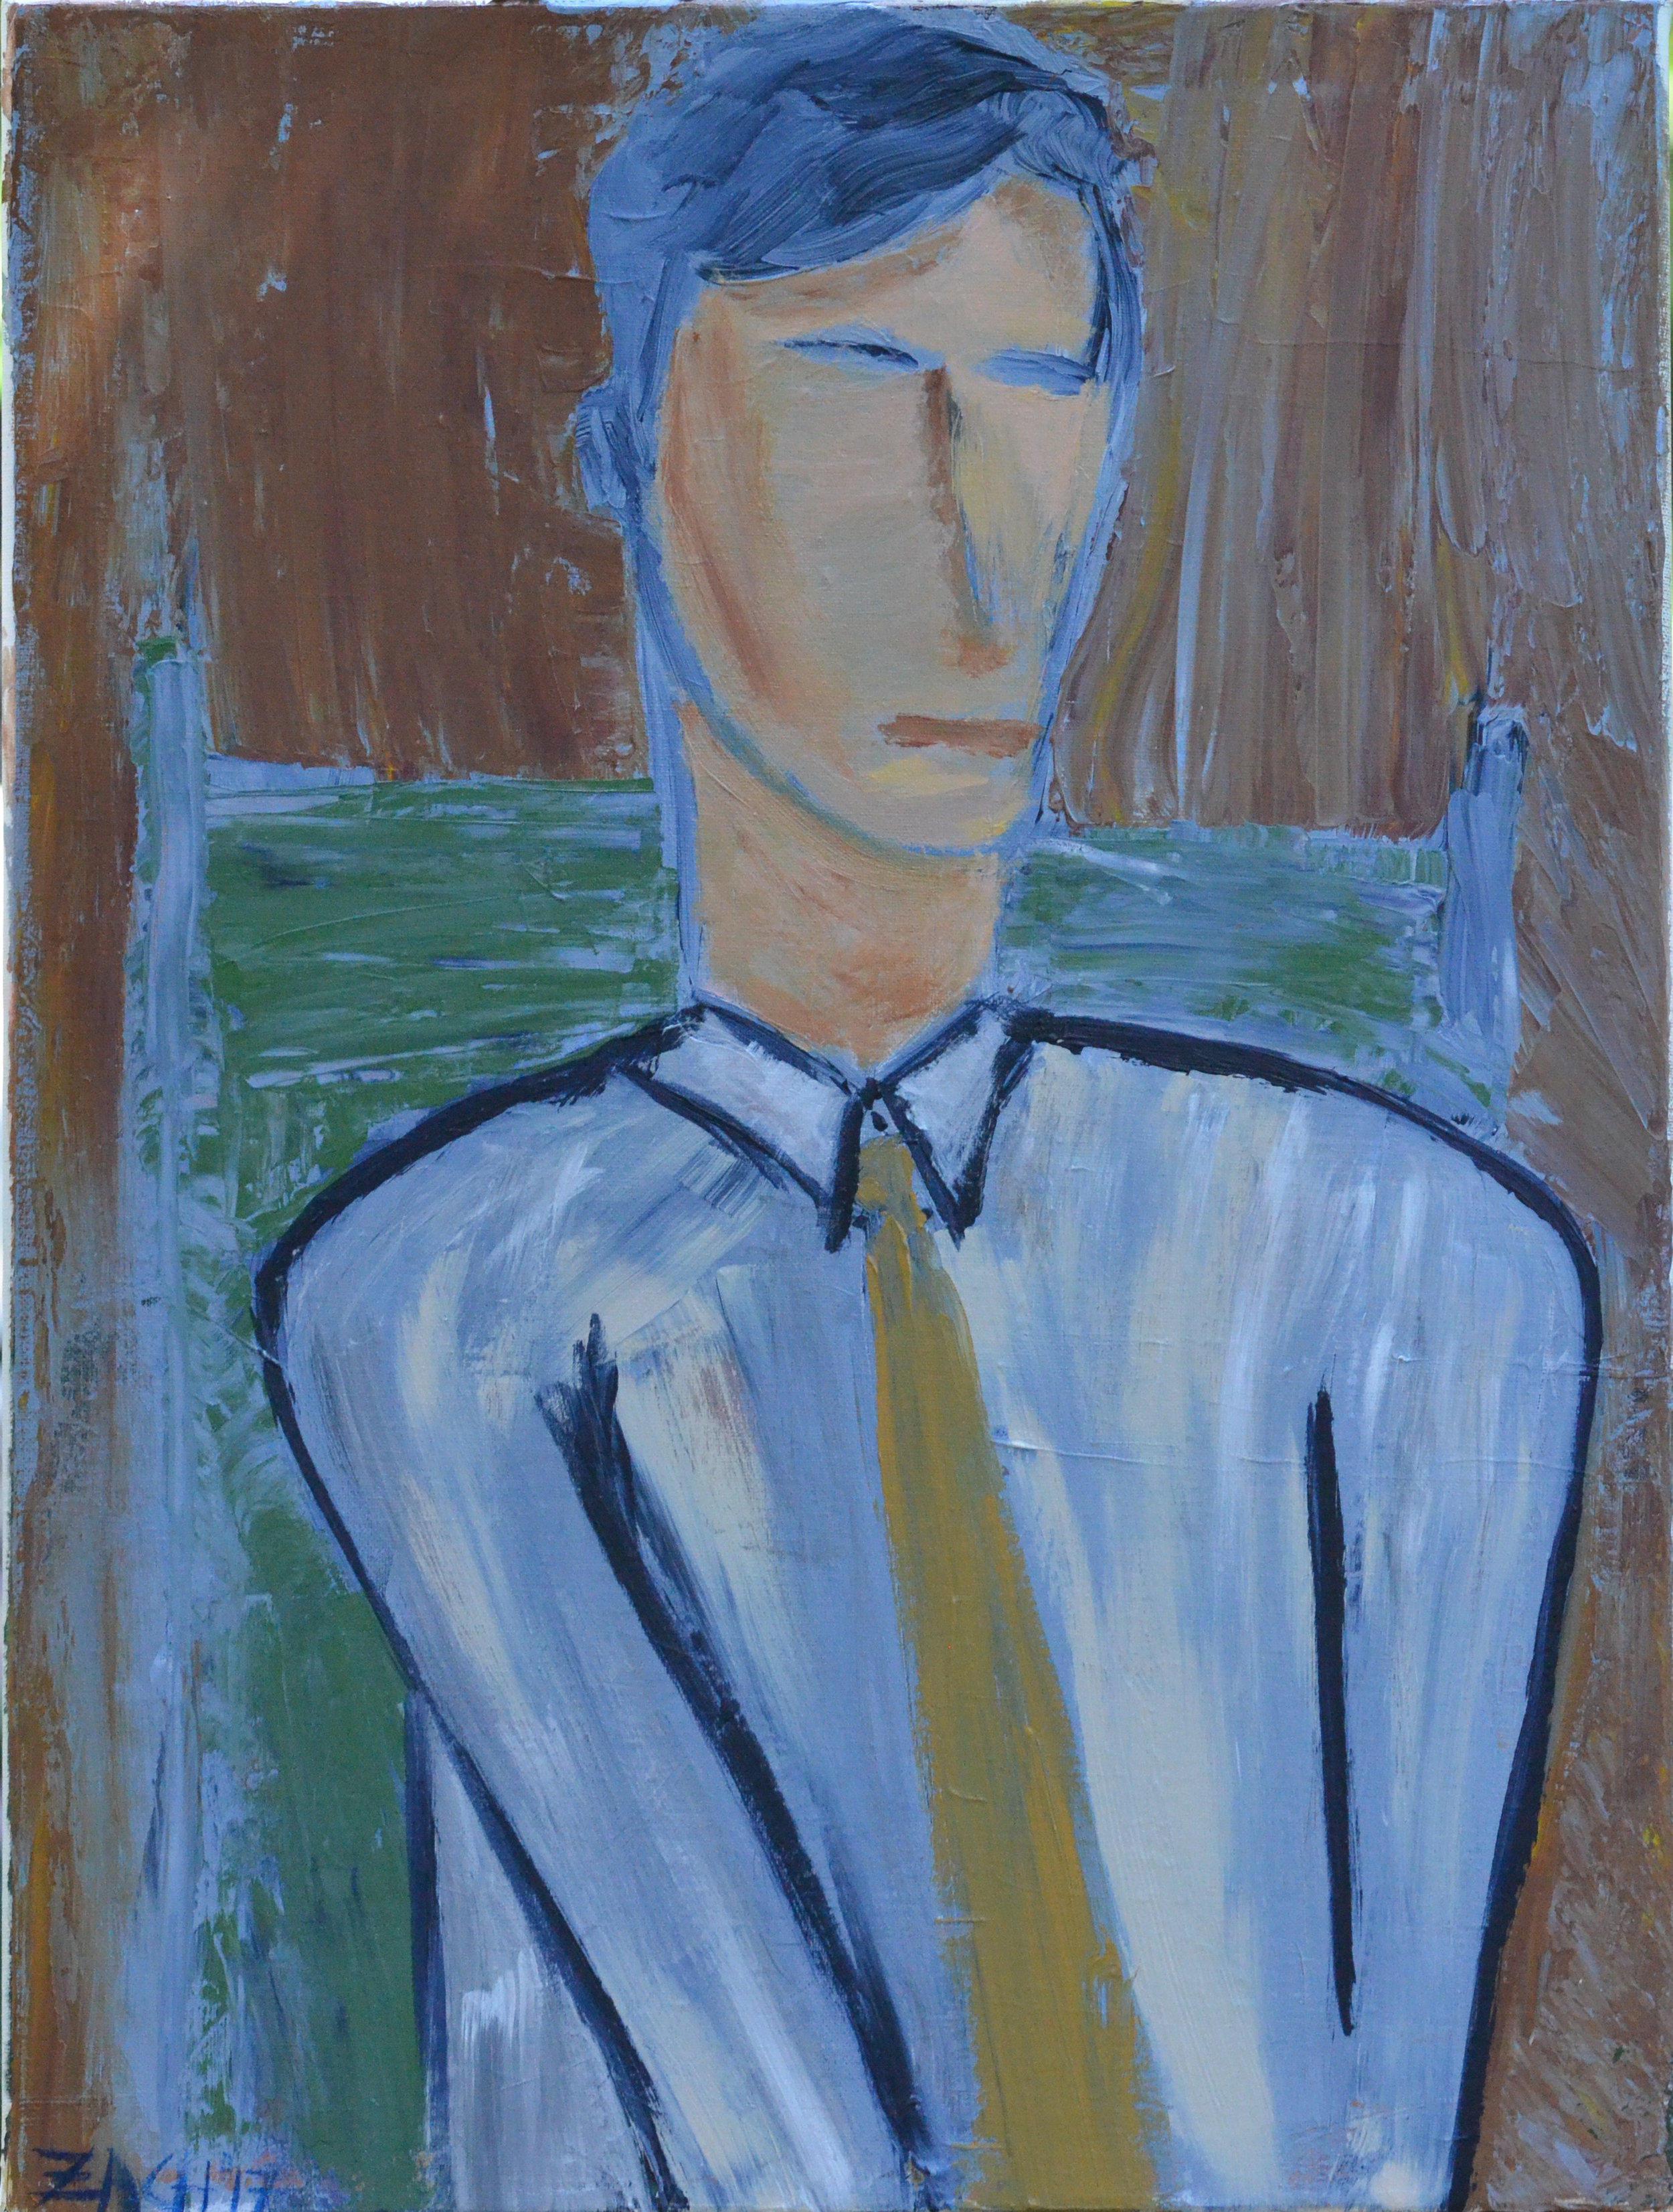 Man with Yellow Tie (2017, acrylic, 18 by 24)